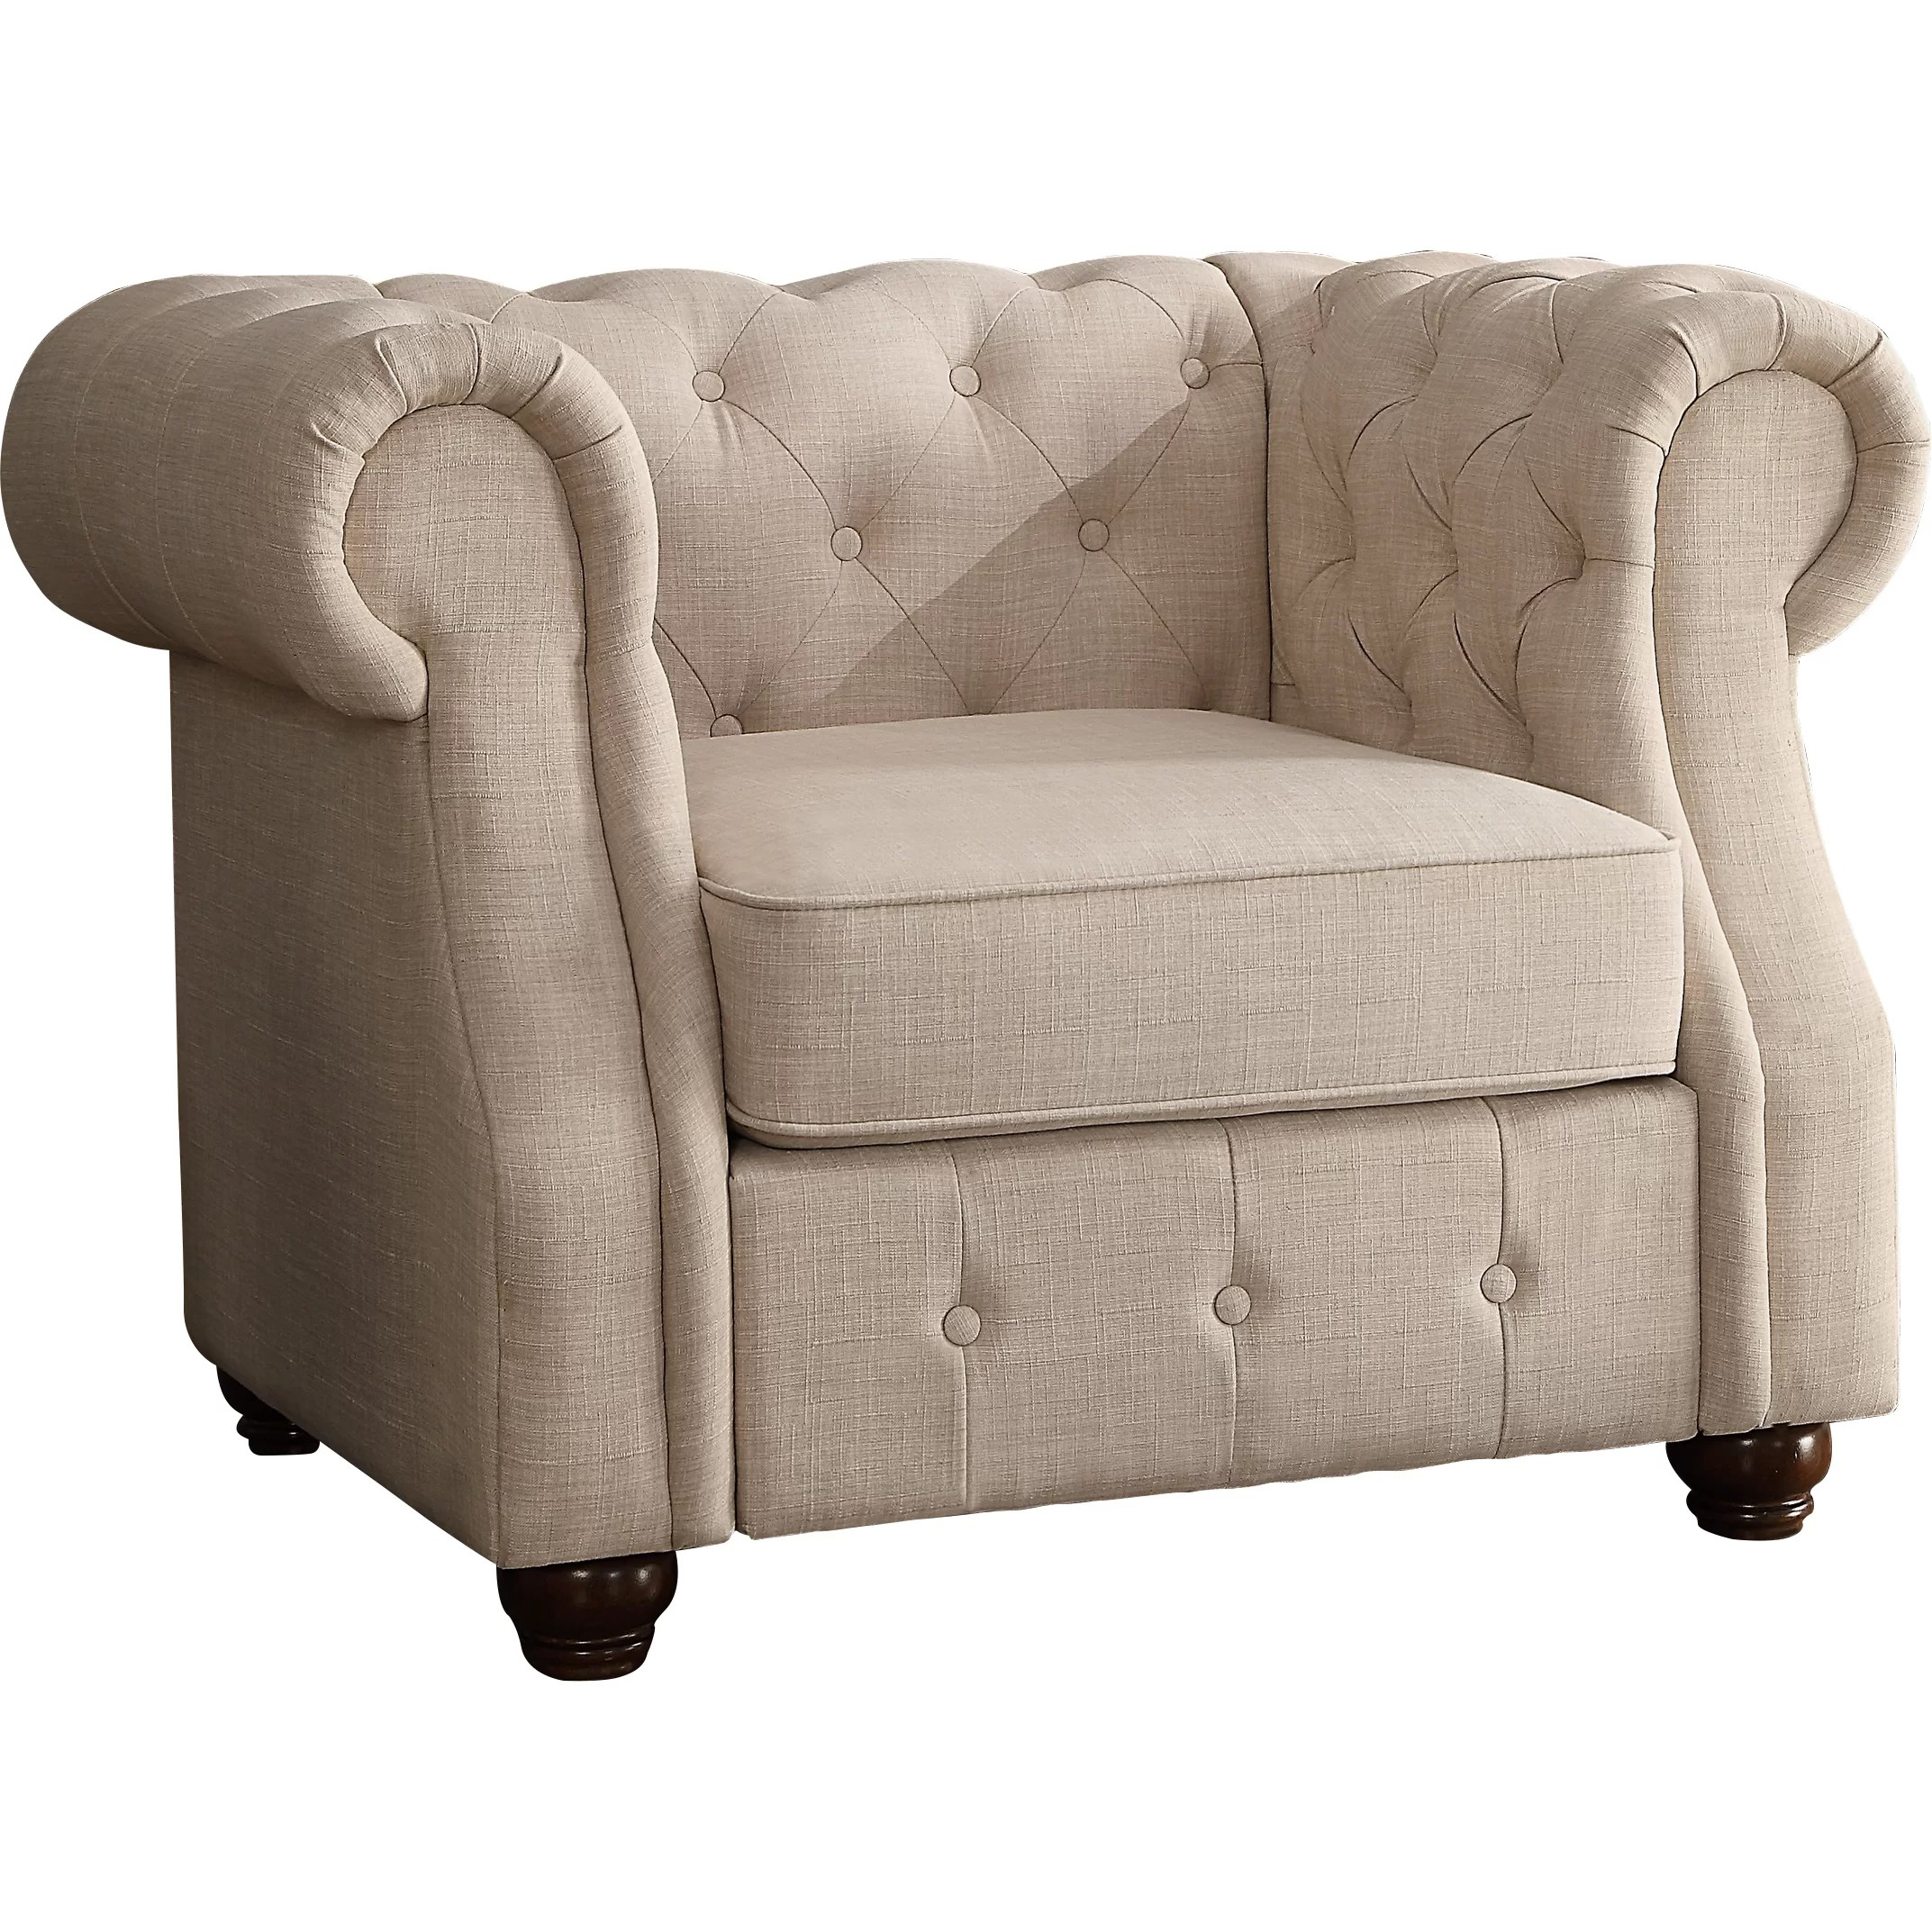 Barrell Chair Mulhouse Furniture Olivia Tufted Barrel Chair And Reviews